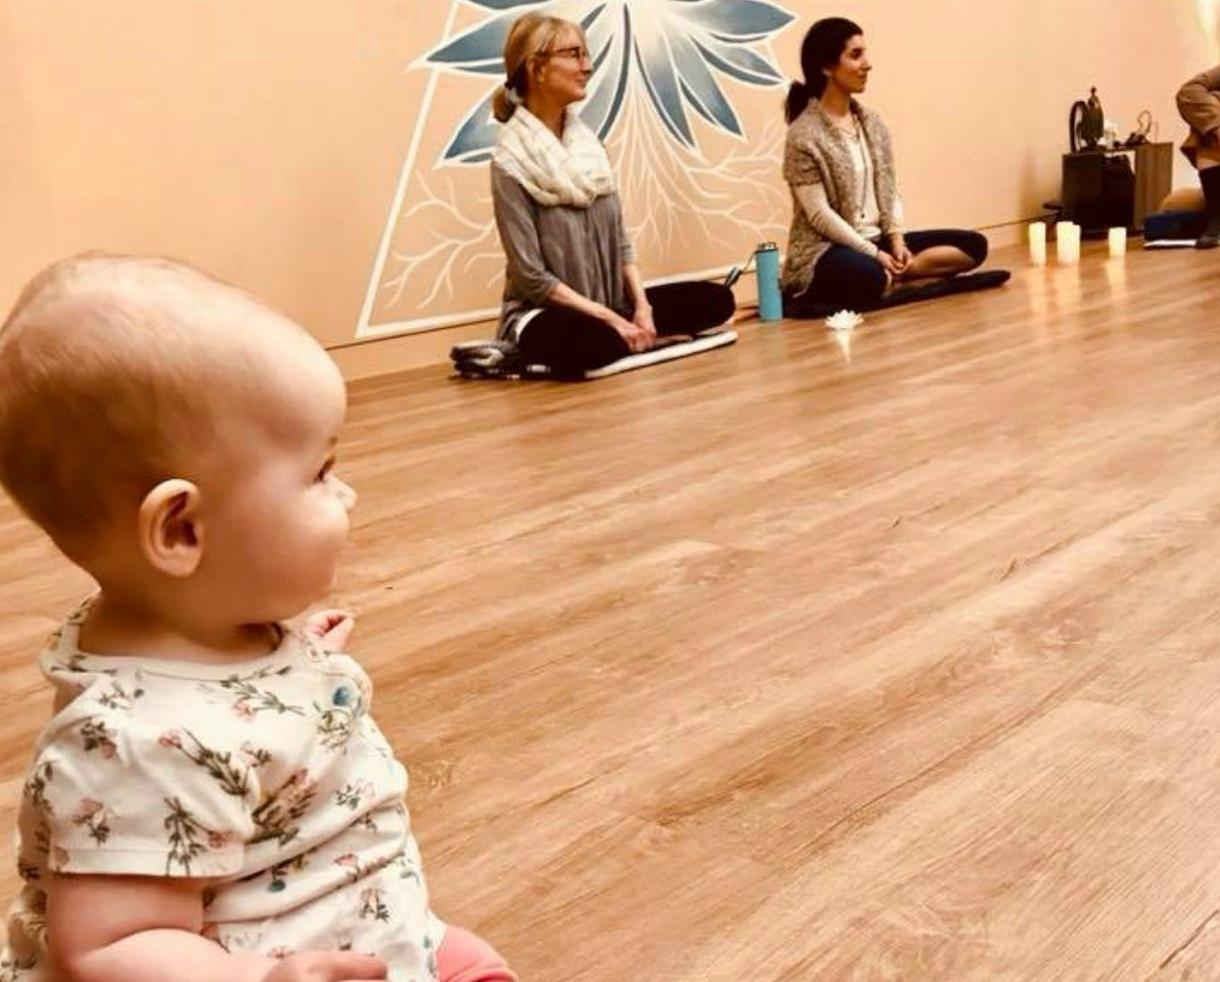 3-Class Kids Drop-In Pass at Beloved Yoga